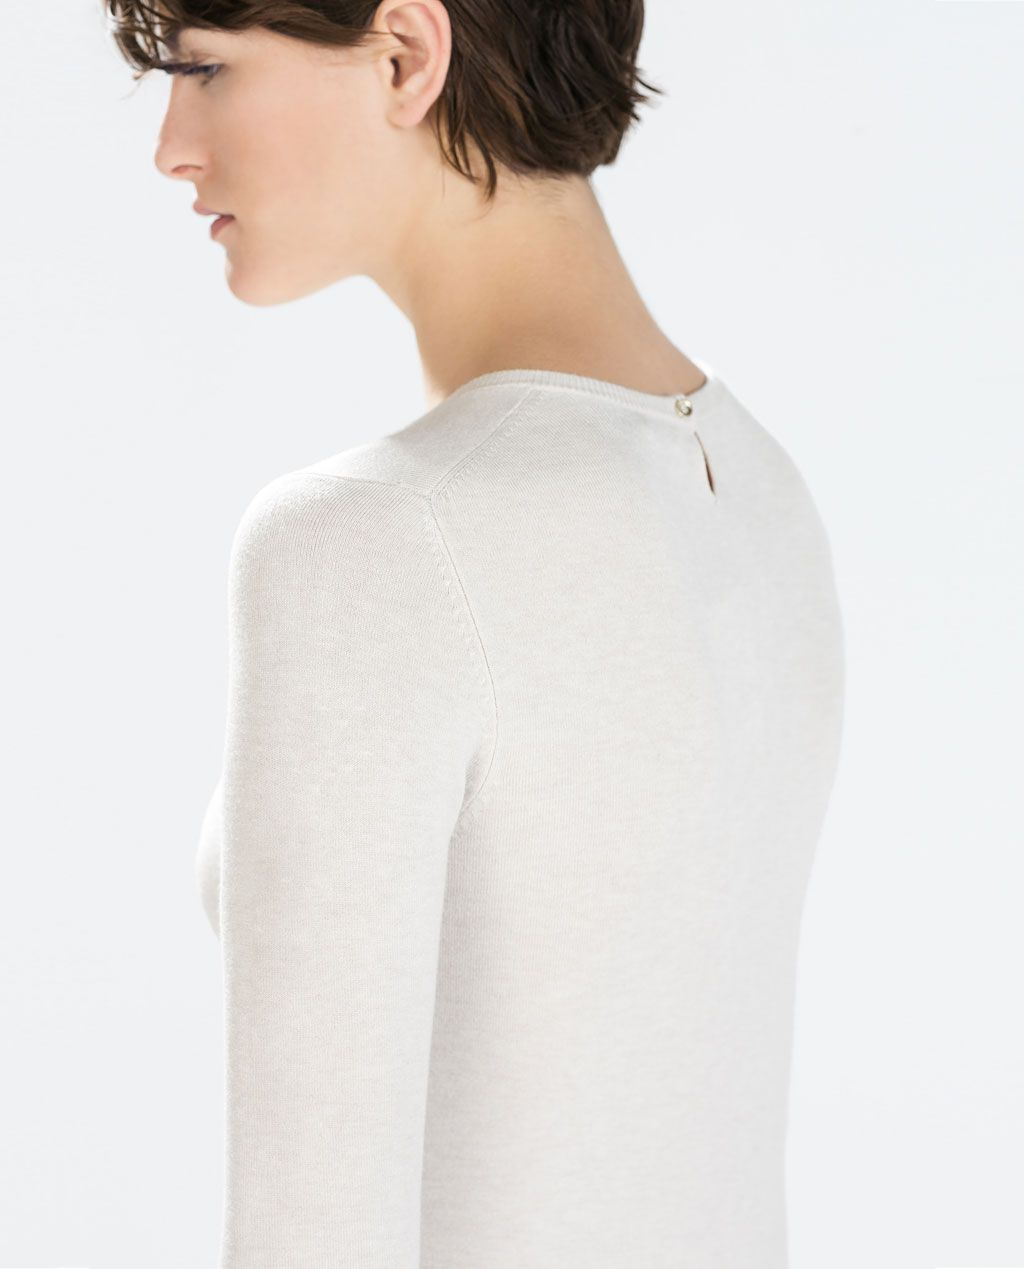 ZARA - COLLECTION AW15 - RAYON SWEATER WITH BUTTONED CUFF